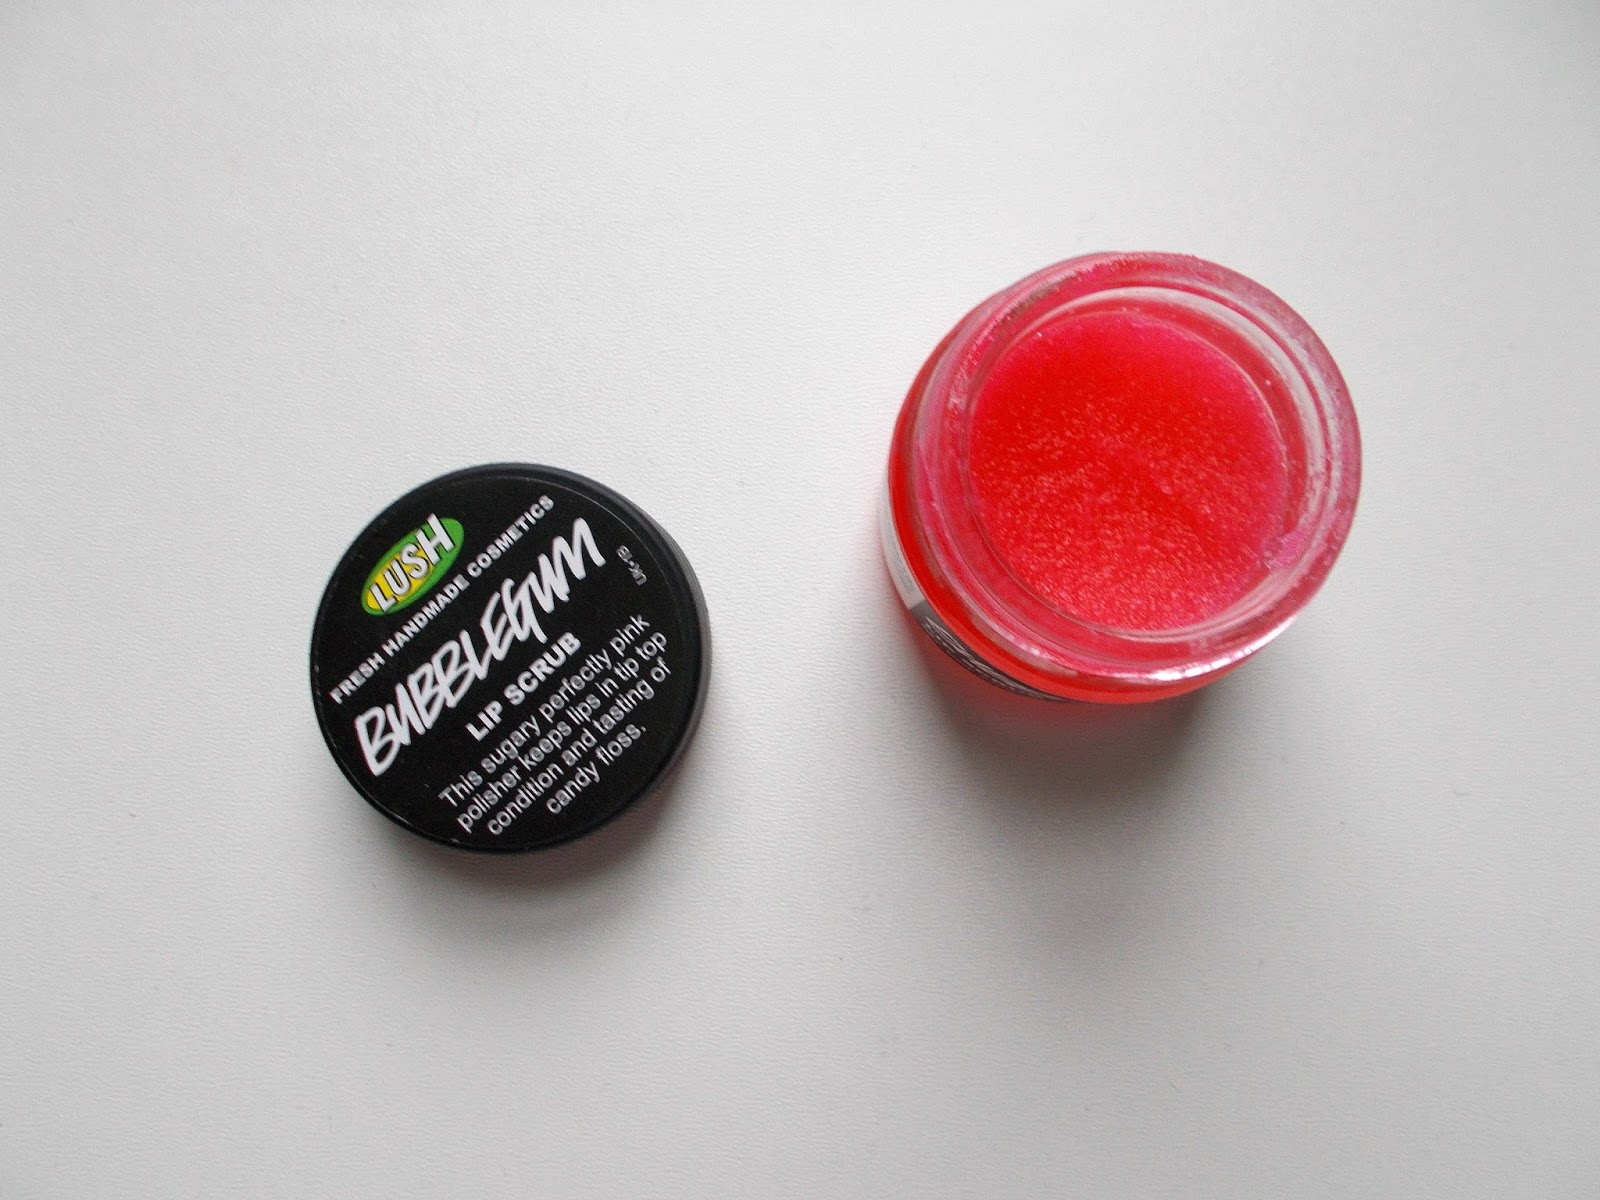 lush lip scrub review bubblegum